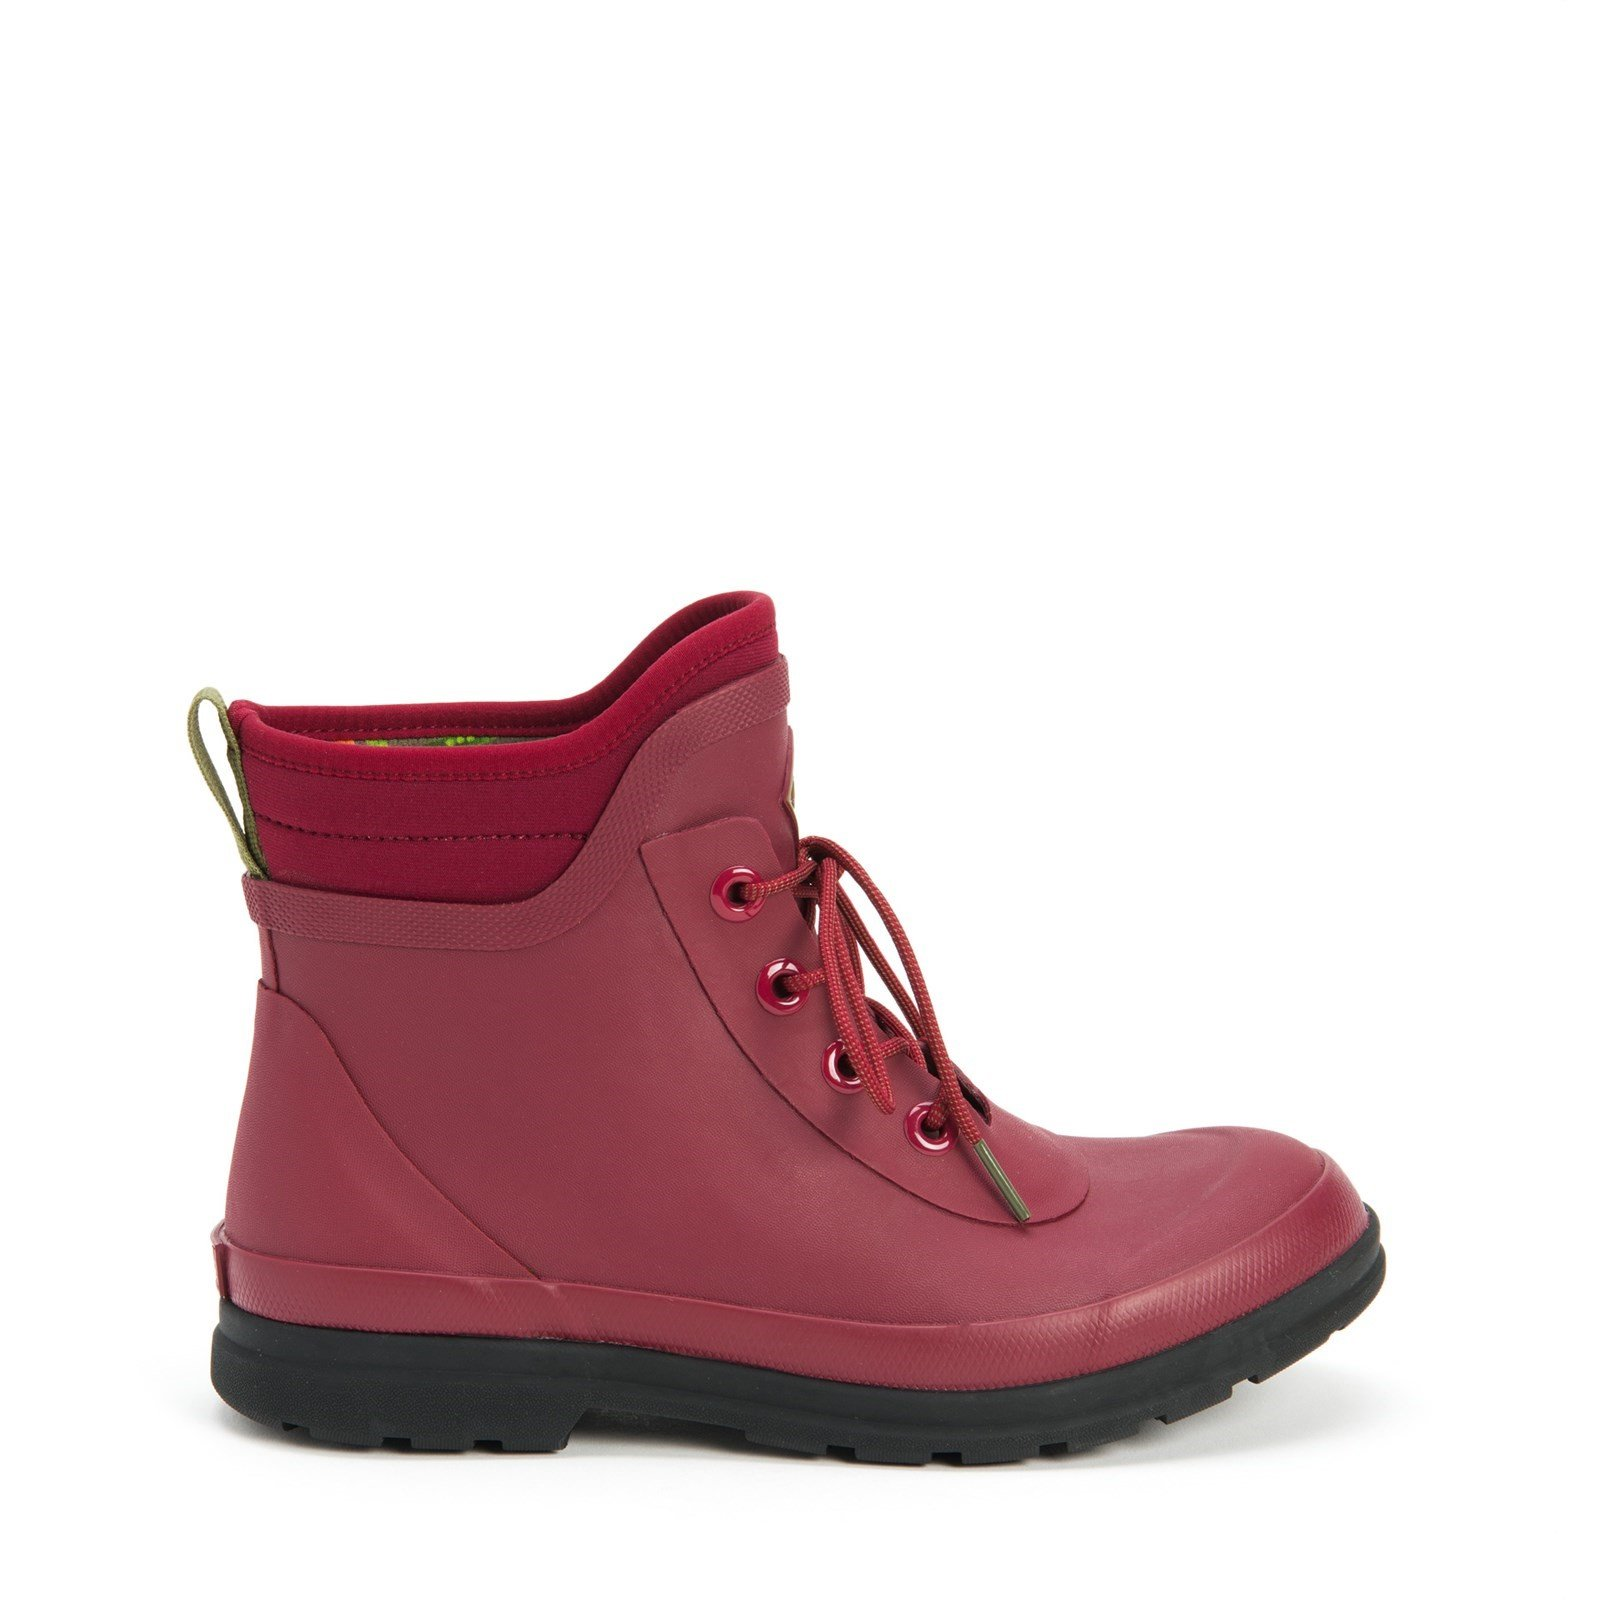 Muck Boots Women's Originals Lace Up Ankle Boot Various Colours 30079 - Berry 5